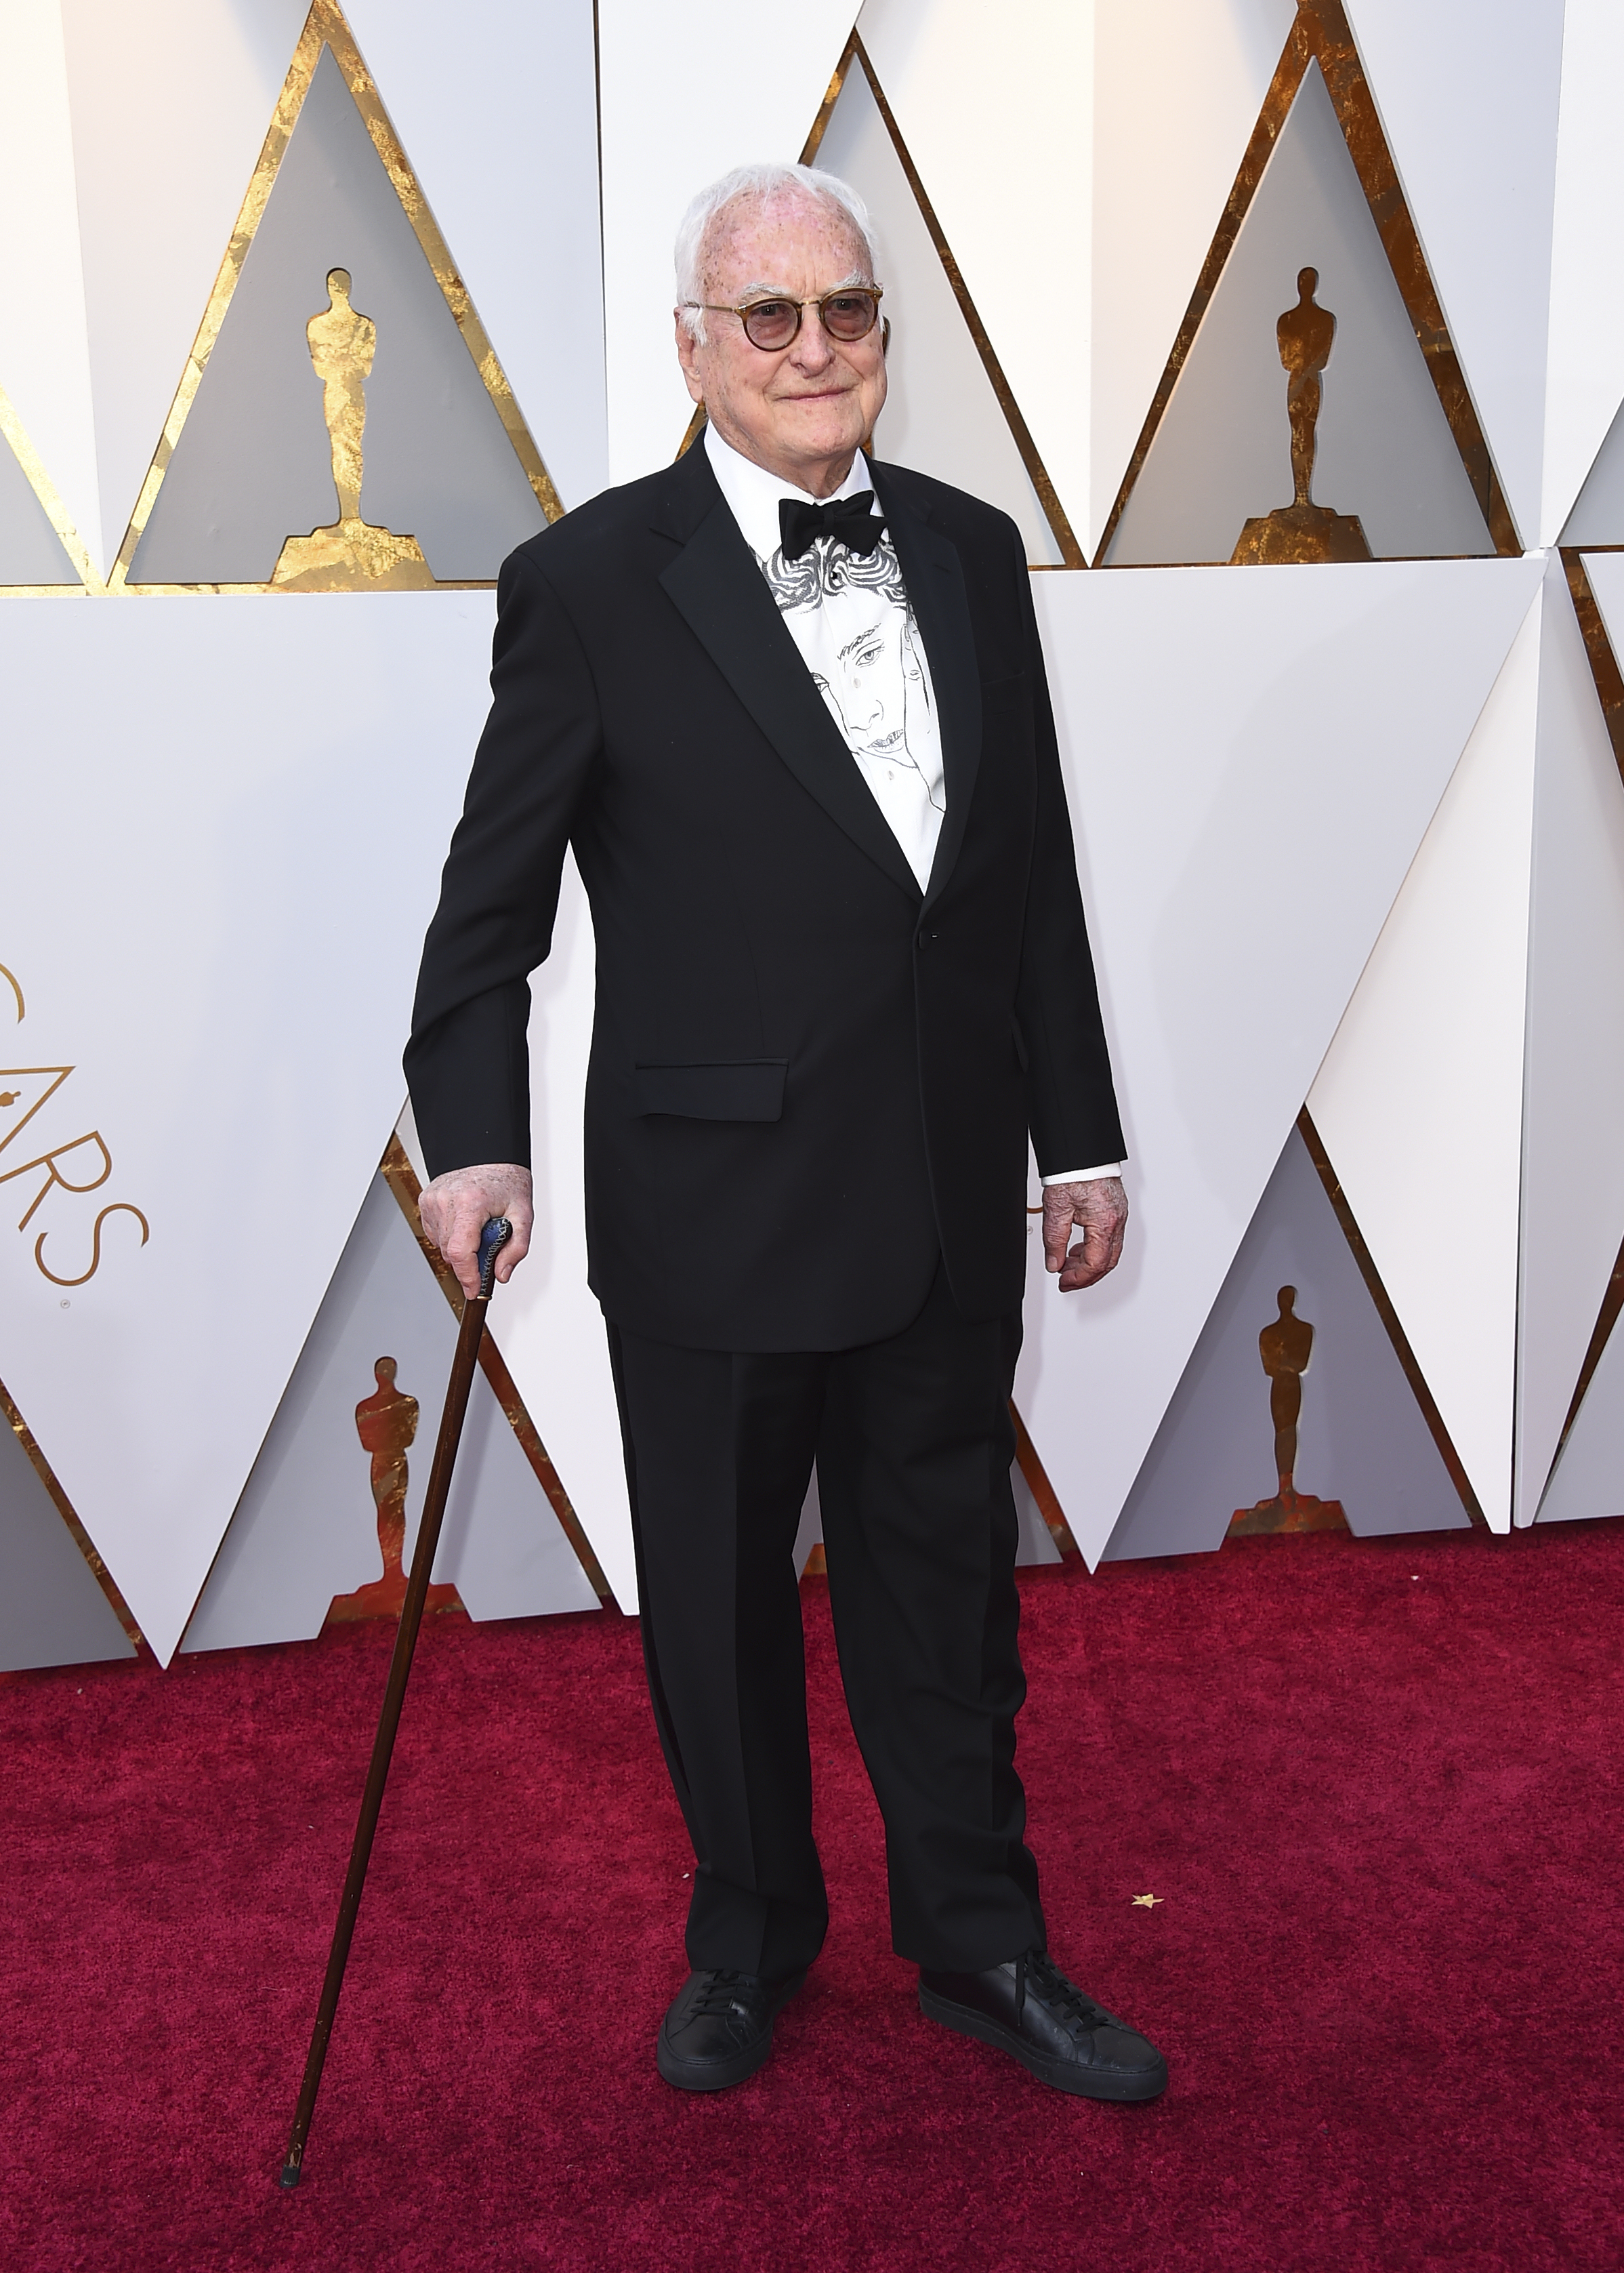 <div class='meta'><div class='origin-logo' data-origin='none'></div><span class='caption-text' data-credit='Jordan Strauss/Invision/AP'>James Ivory arrives at the Oscars on Sunday, March 4, 2018, at the Dolby Theatre in Los Angeles.</span></div>